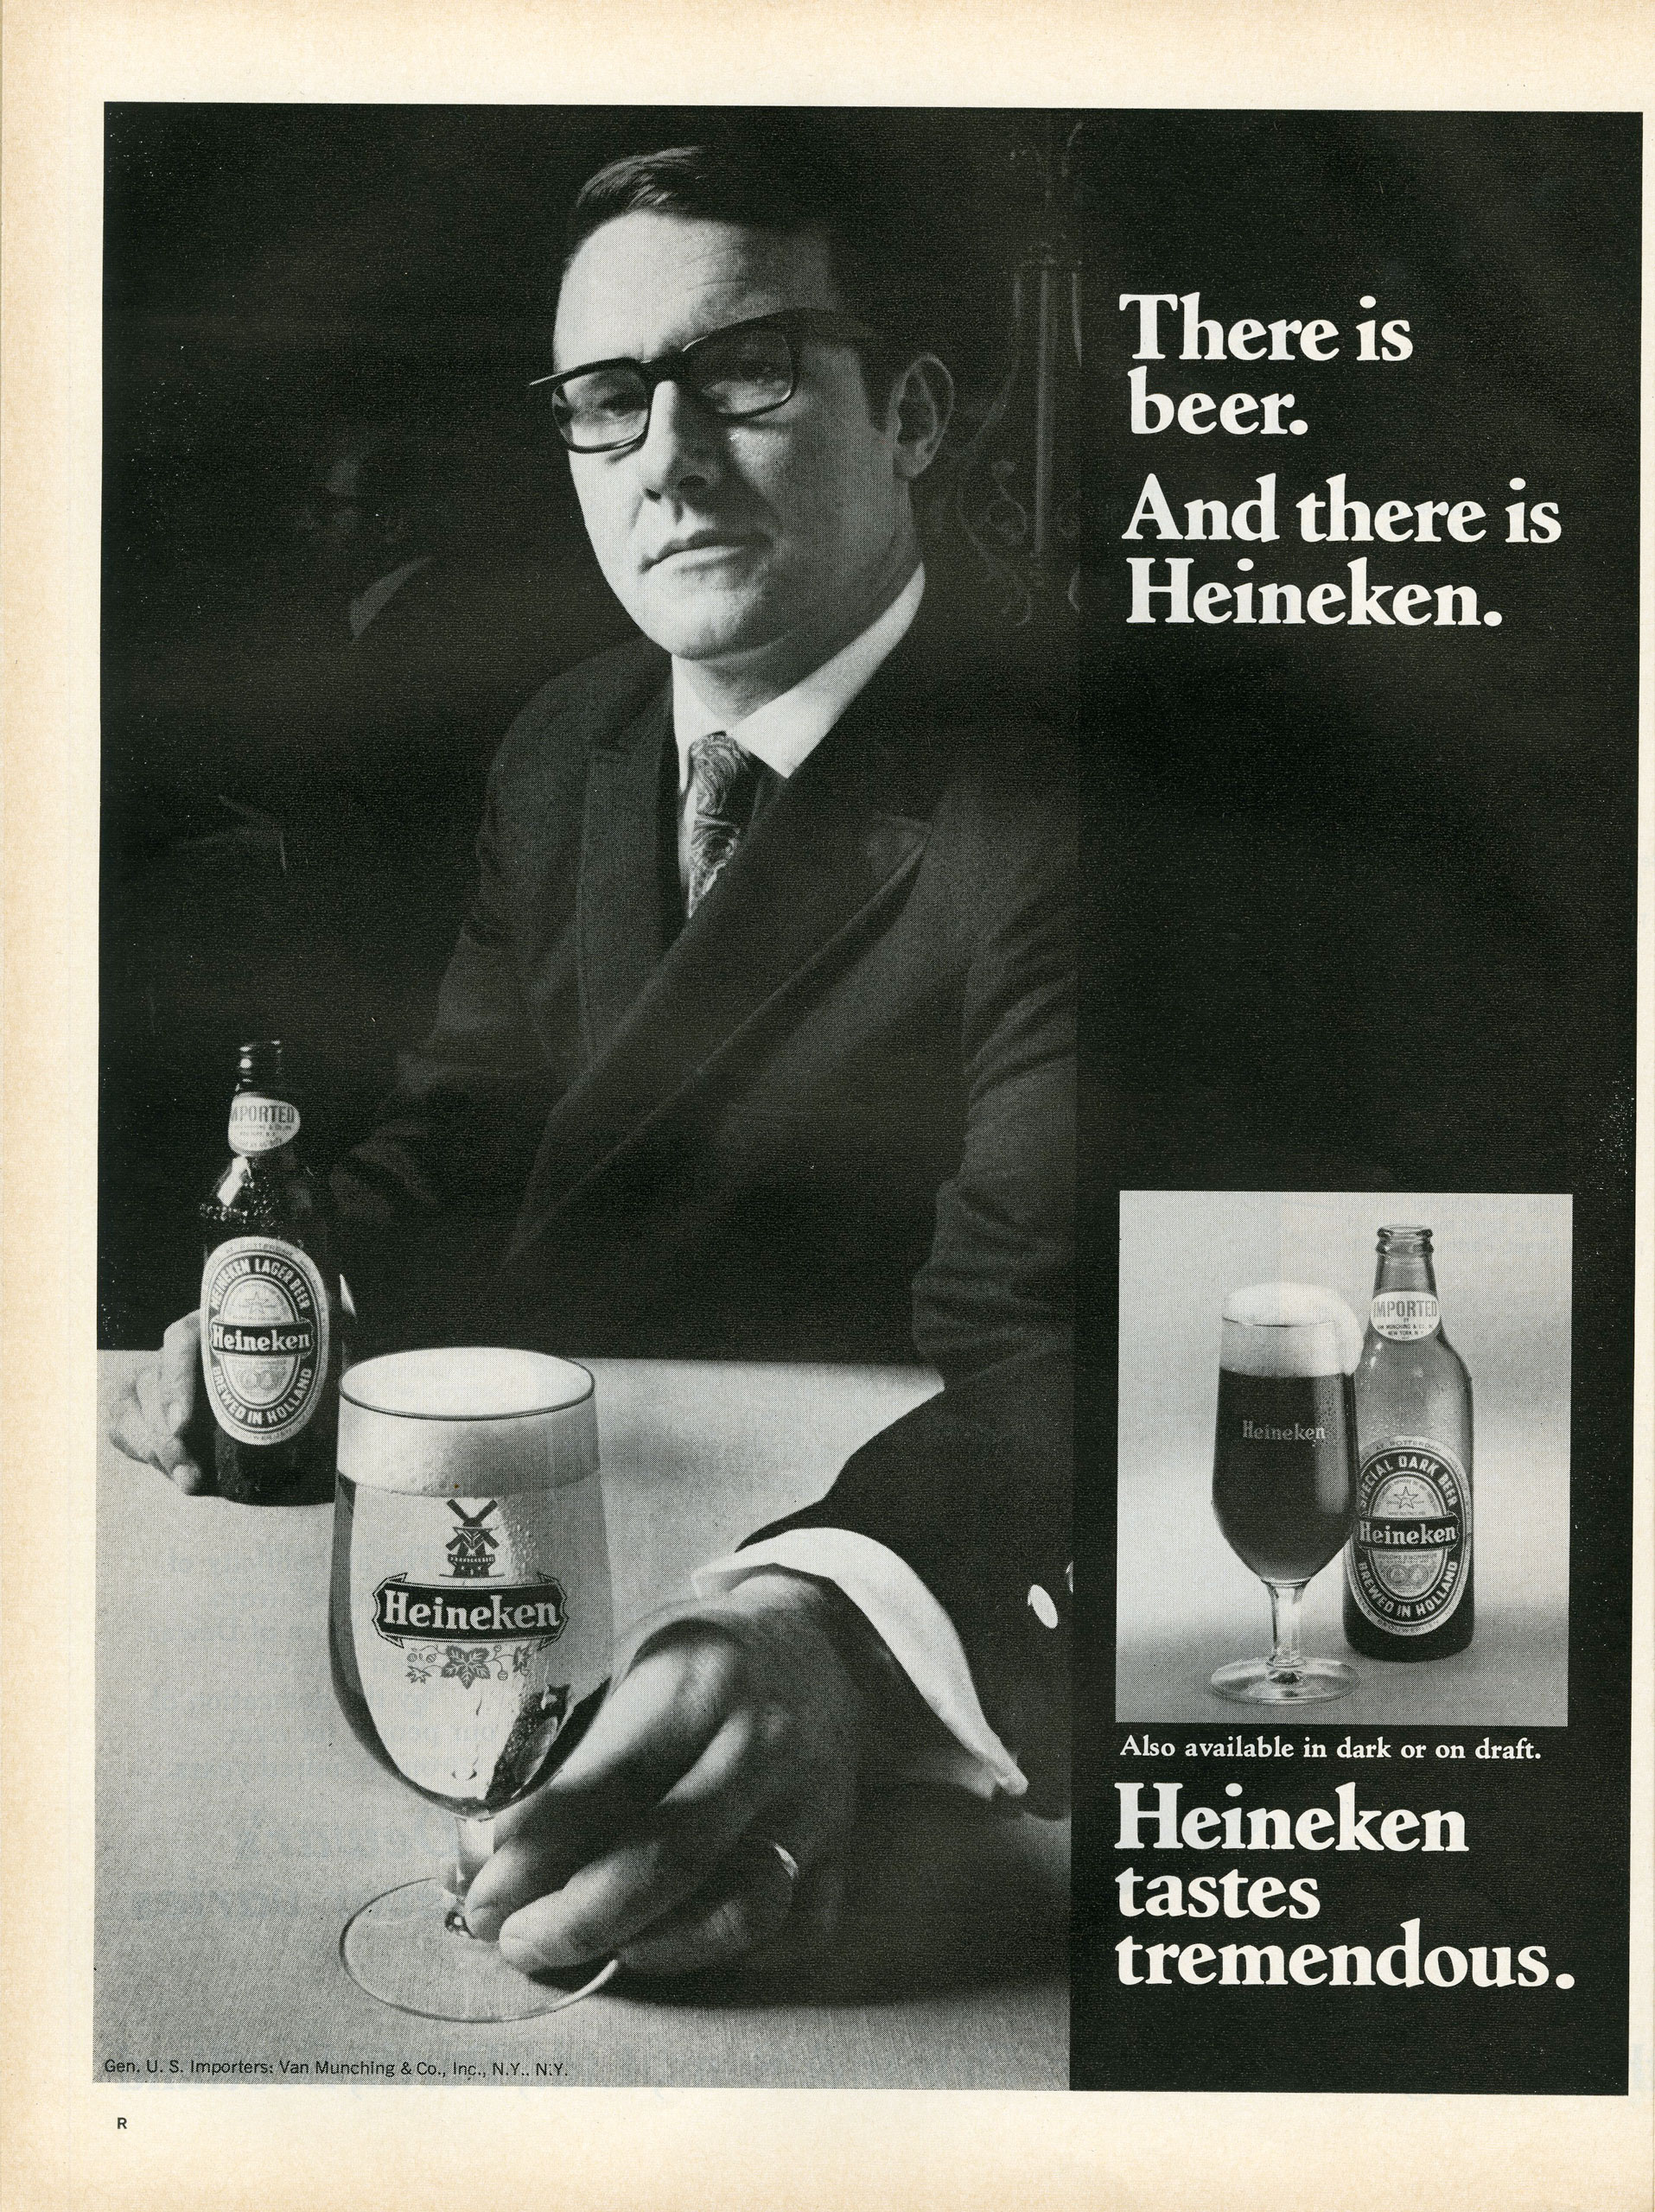 <b>Heineken, September 12, 1969</b> Don pitches Heineken on targeting suburban housewives by advertising in grocery stores.  Conversely, this ad from the late 1960s is explicitly aimed at men, and not just any men: the model is bespectacled (intelligent), suited up (a businessman) and bejeweled (married). In contrast to ads like Chevrolet's that rely on ample text, this one is simple, offering two straightforward takeaways. First, that Heineken's product is distinguished from its peers. And second, that it simply tastes good.